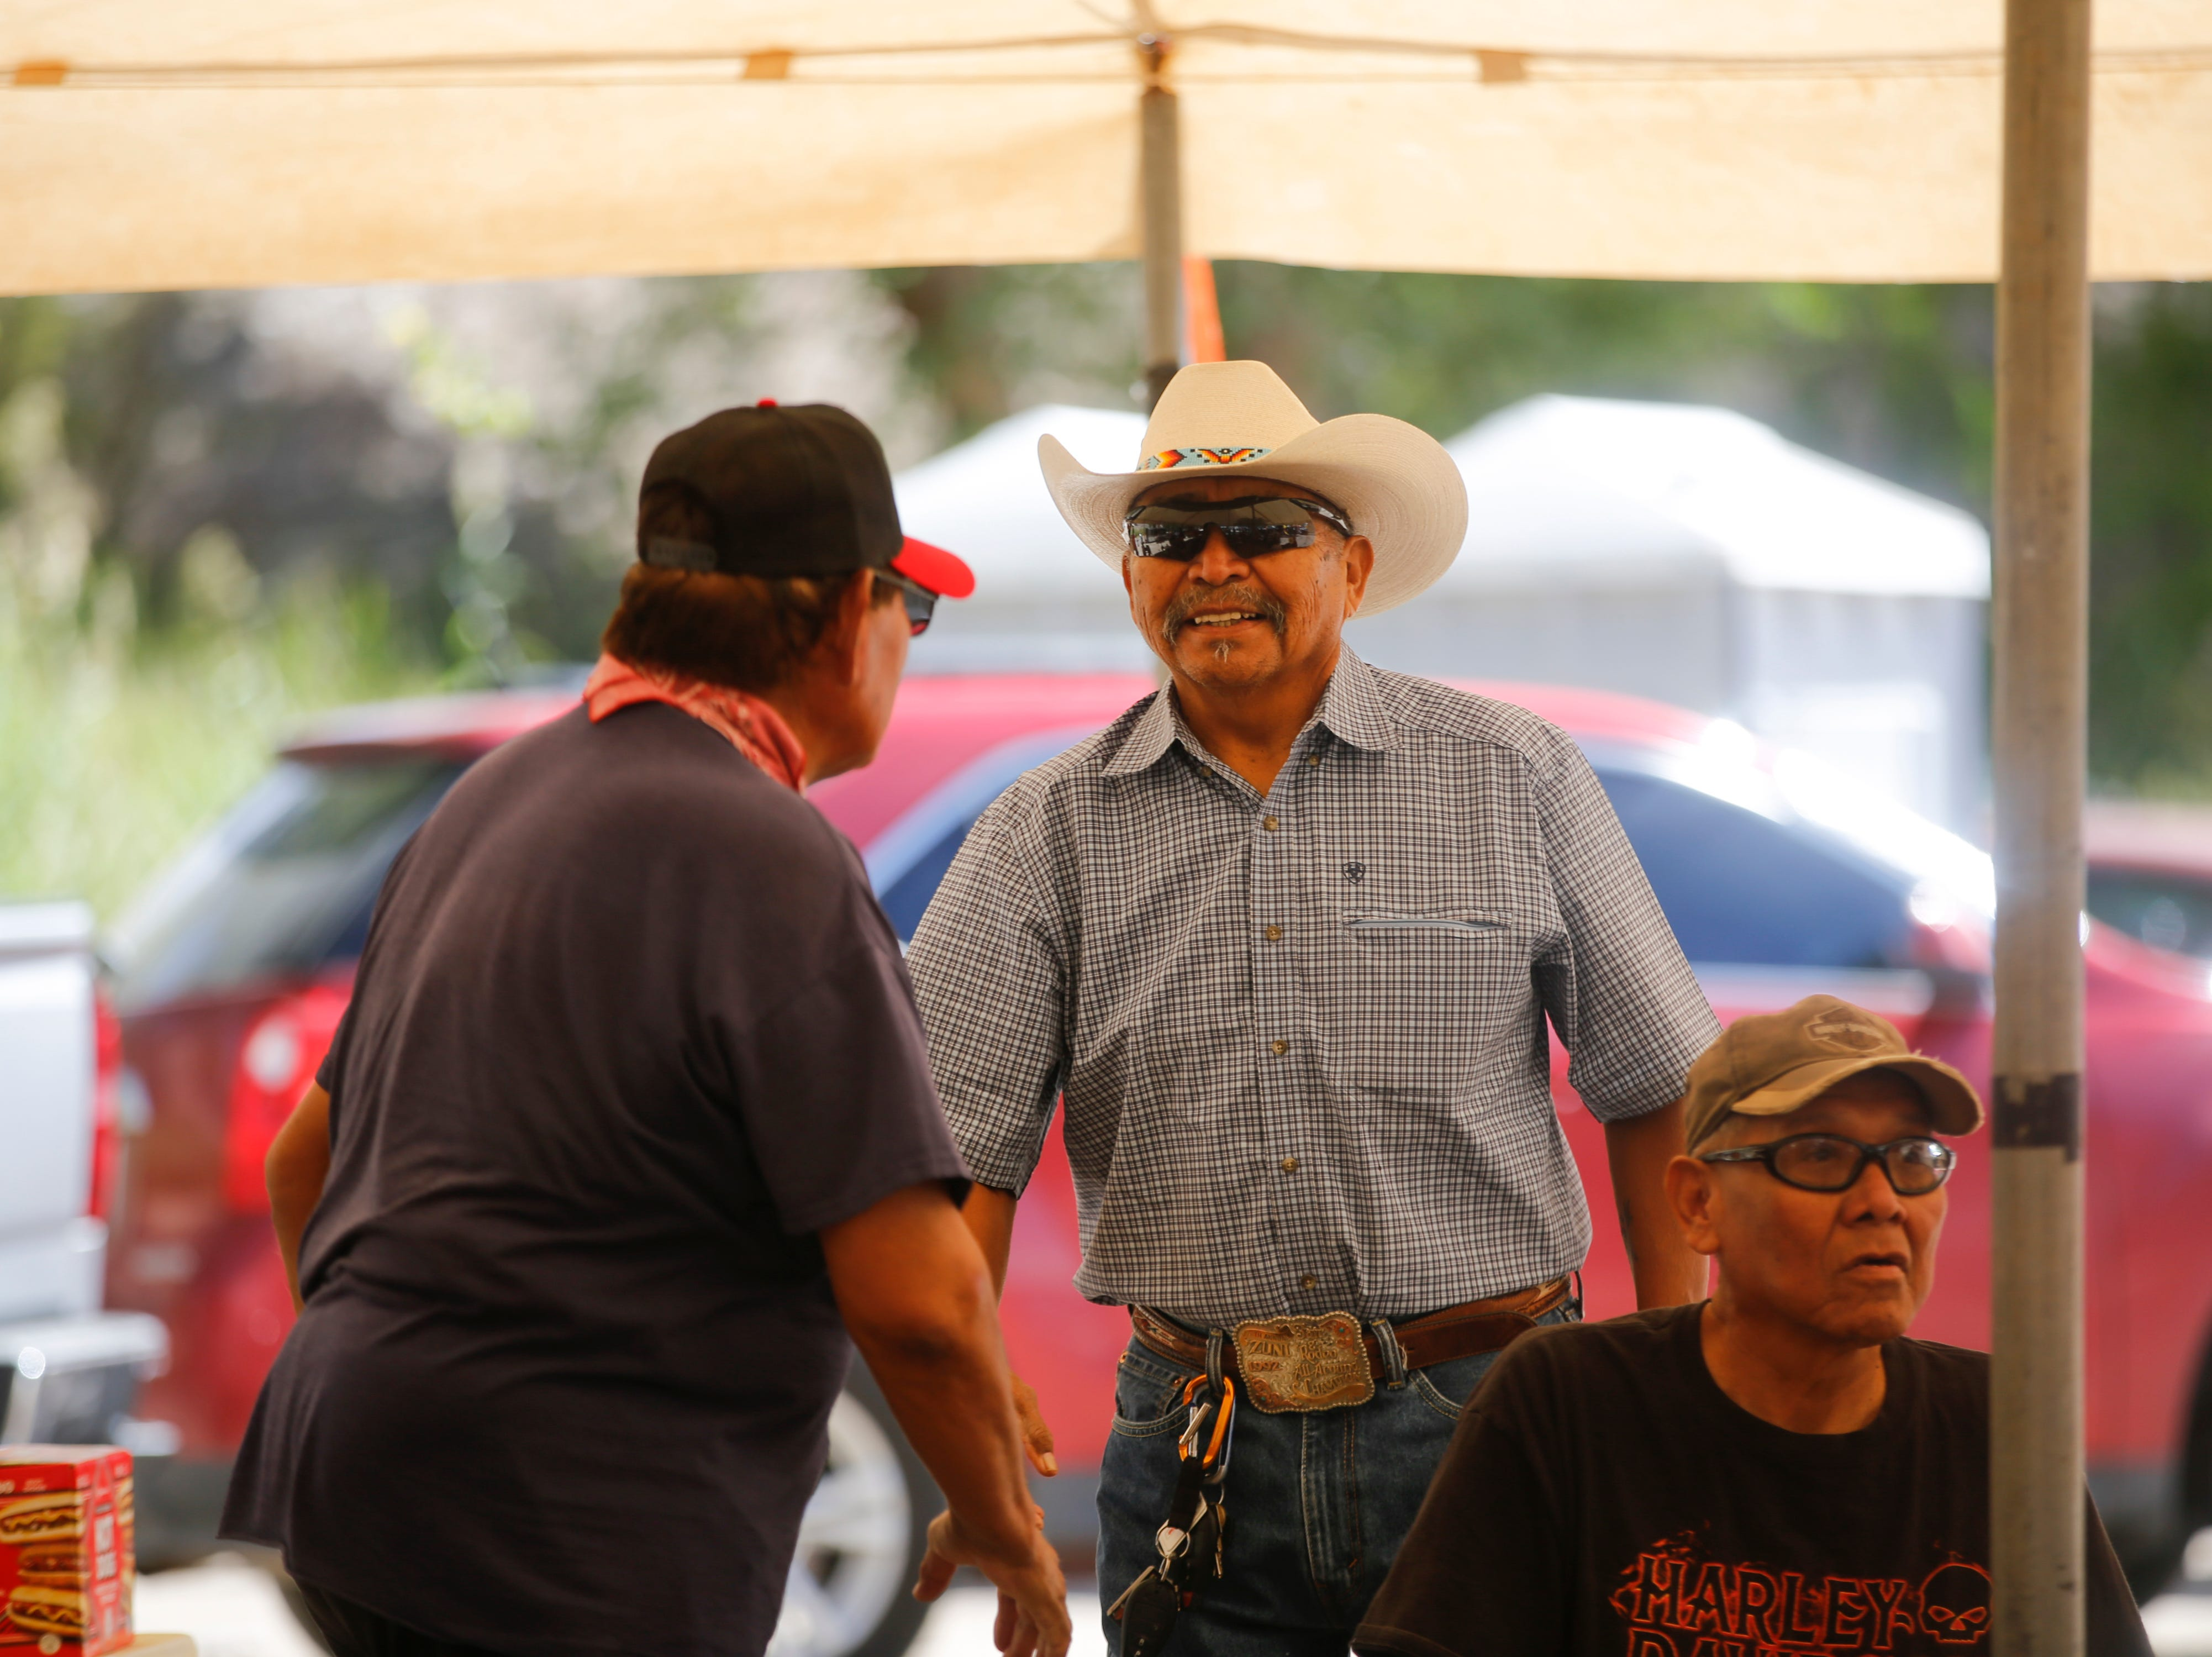 Navajo Nation Presidential candidate Tom Tso meets with voters, Tuesday, Aug. 28, 2018 at the Shiprock Chapter House.